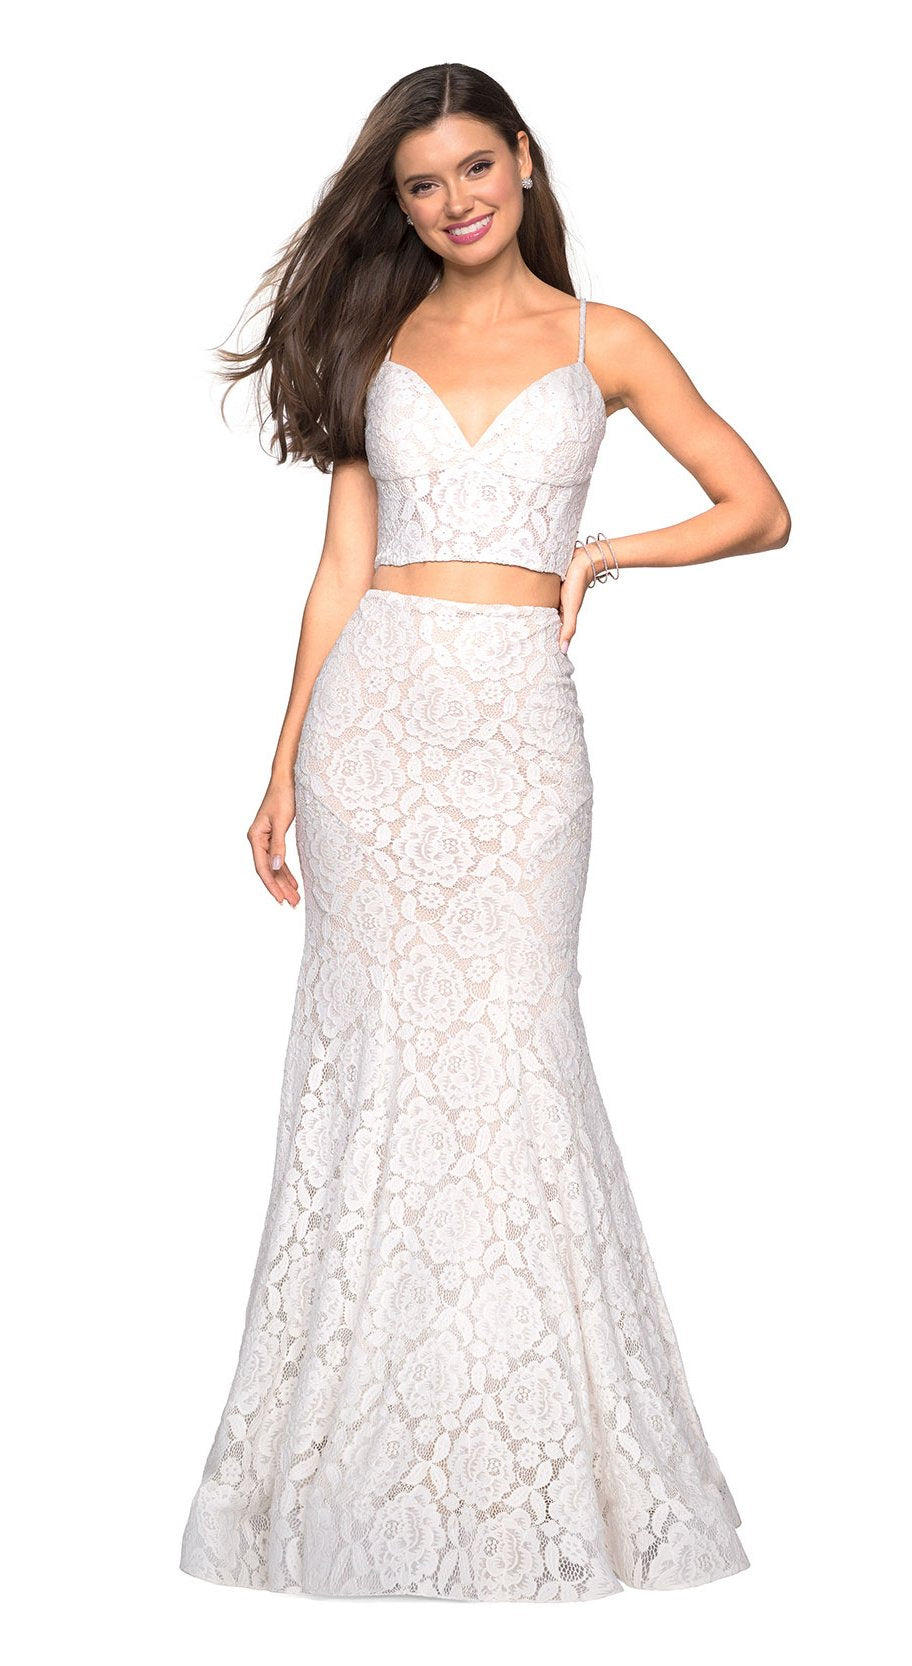 La Femme - Two Piece Lace Stretch Jersey Mermaid Evening Gown 27589 In White